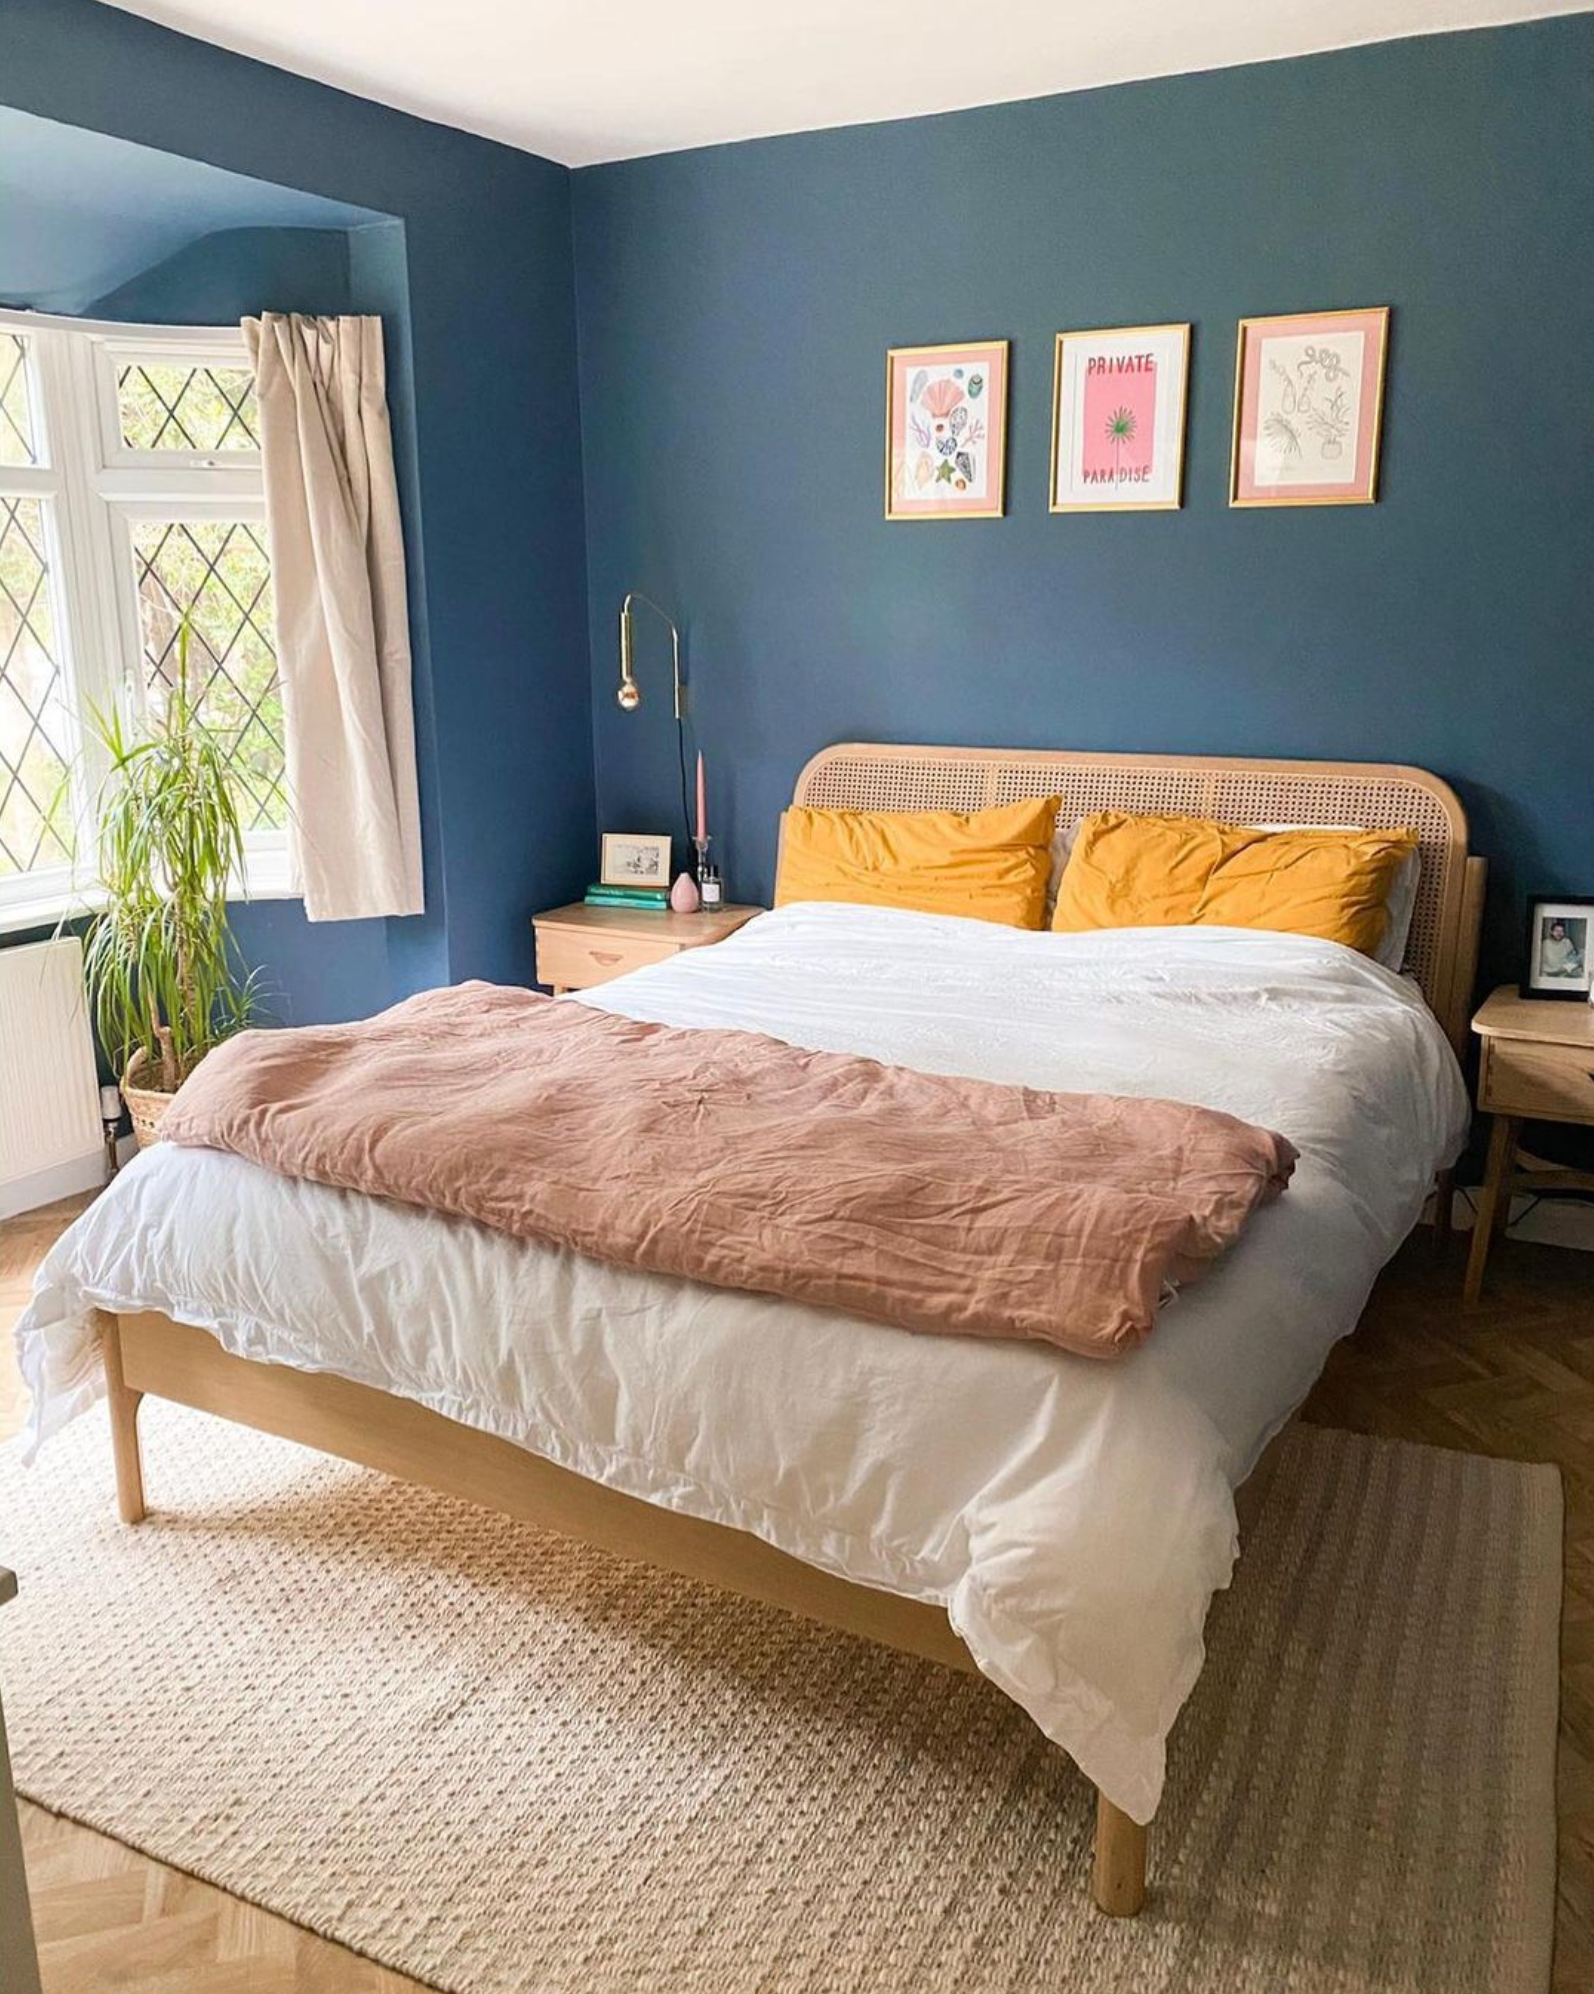 Image via Instagram @theleoparduk, wall color by Farrow & Ball in 'Hague Blue'